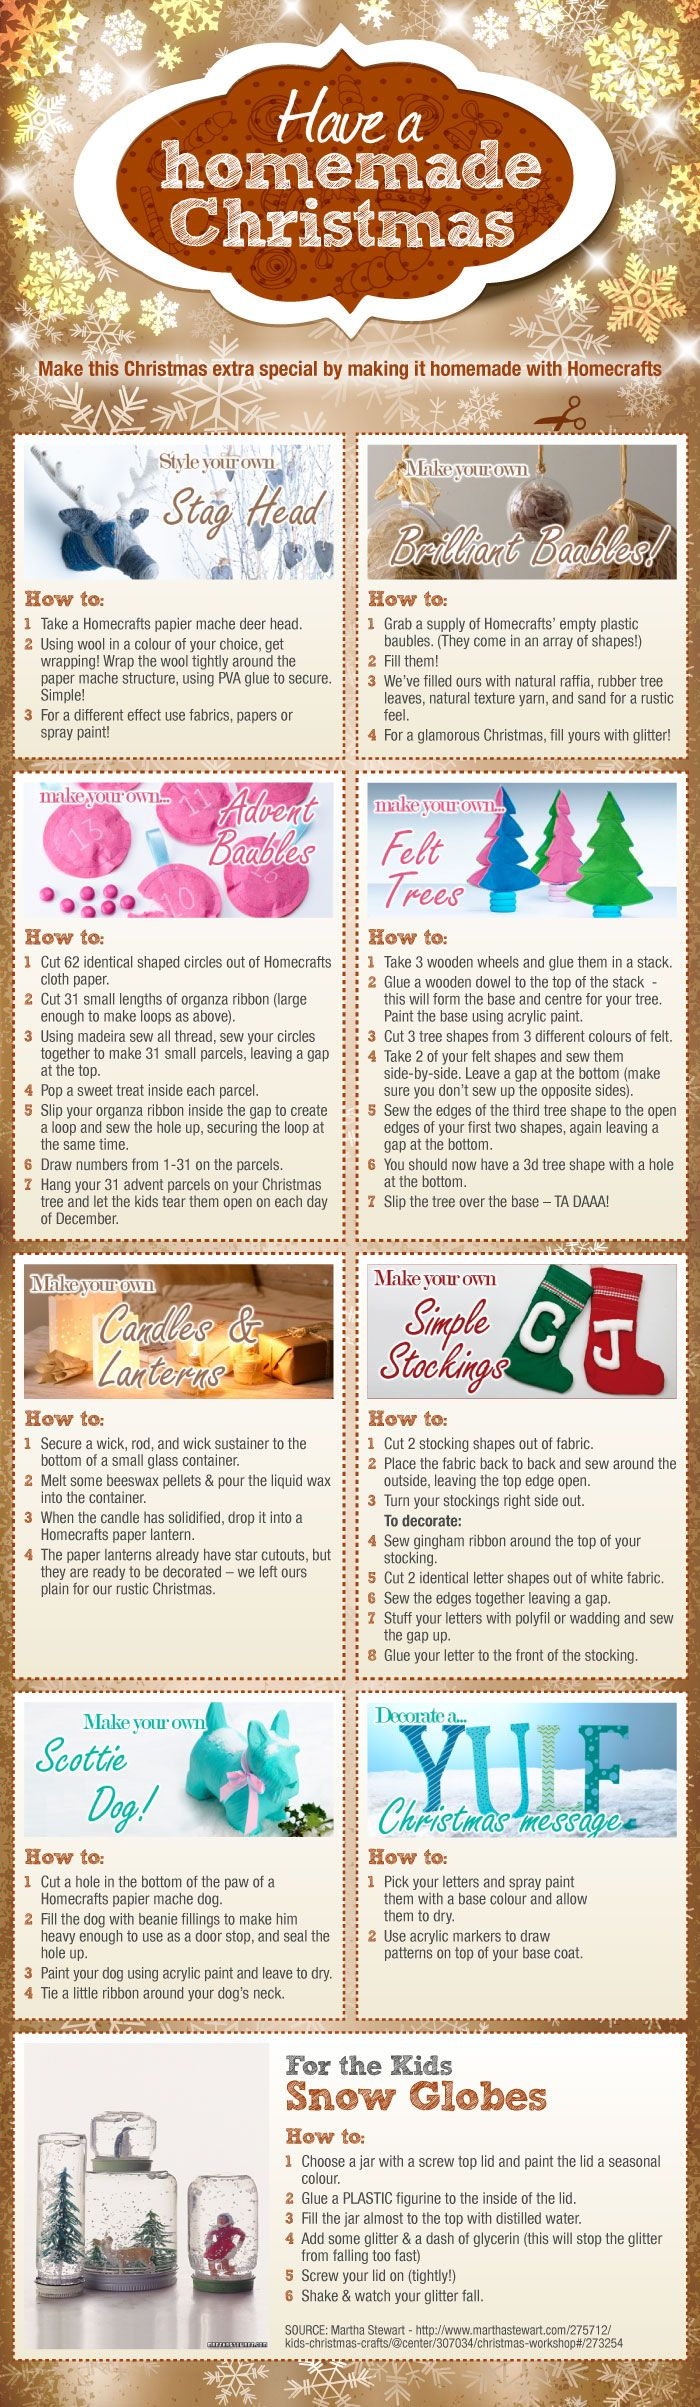 Lots of fabulous ideas for fun and easy Christmas crafts